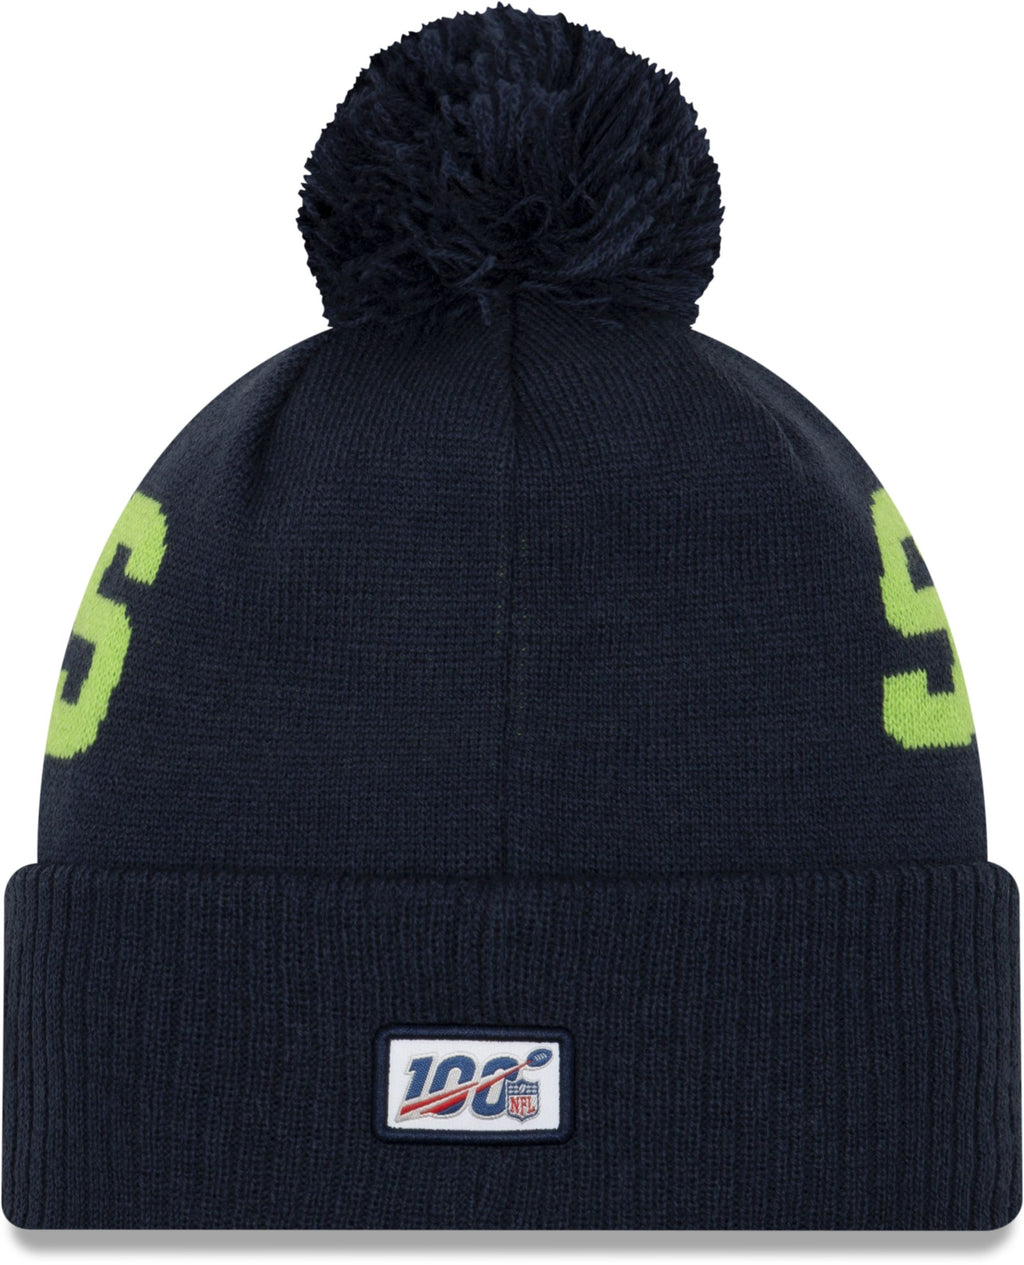 New Era ONF19 Cold Weather Seattle Seahawks Bobble Beanie Hat Blue